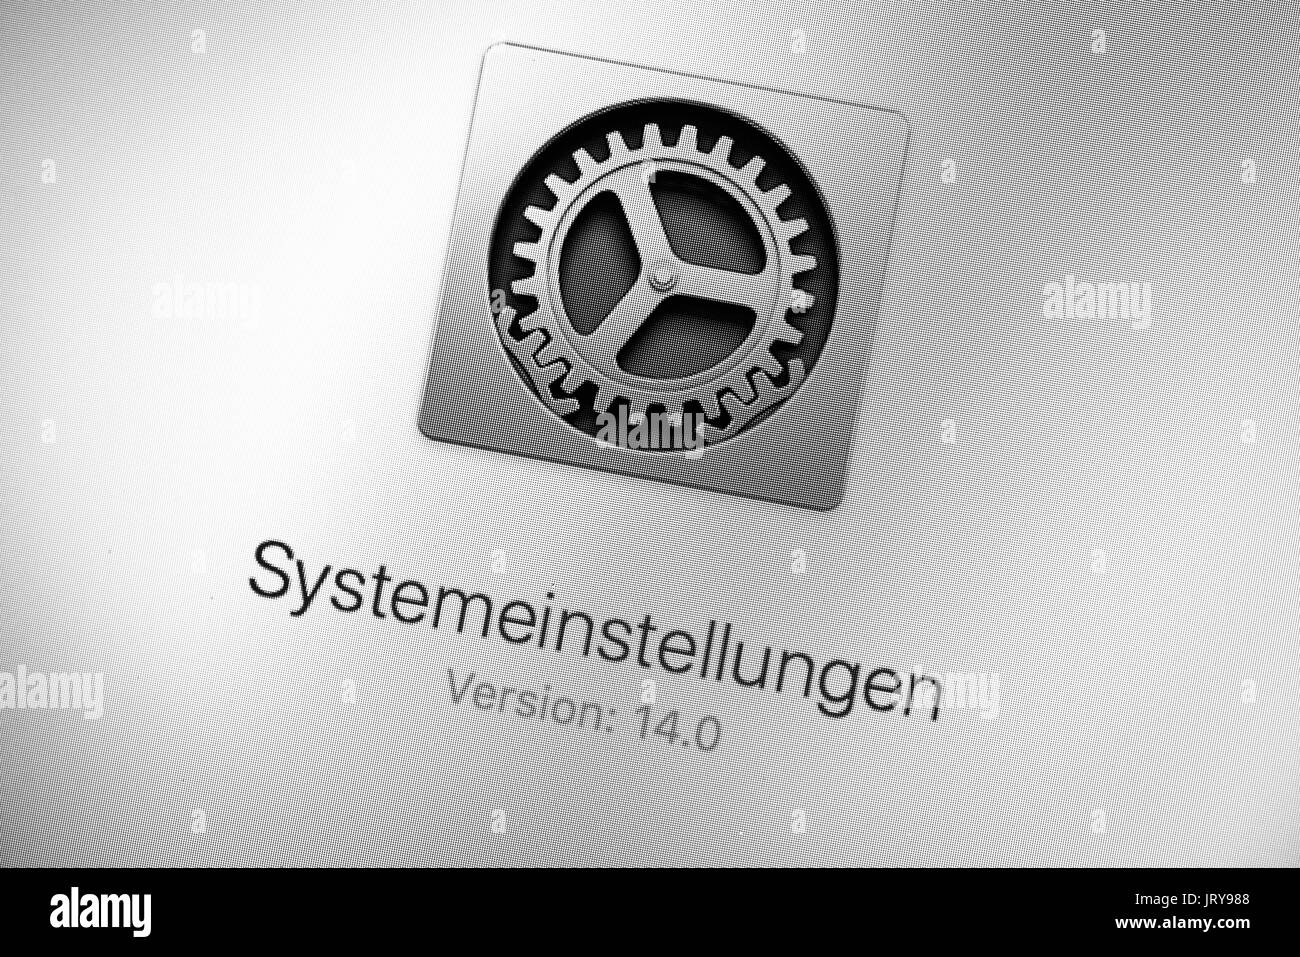 System settings, settings, Mac OS, macro shot, detail, full frame, screen shot - Stock Image